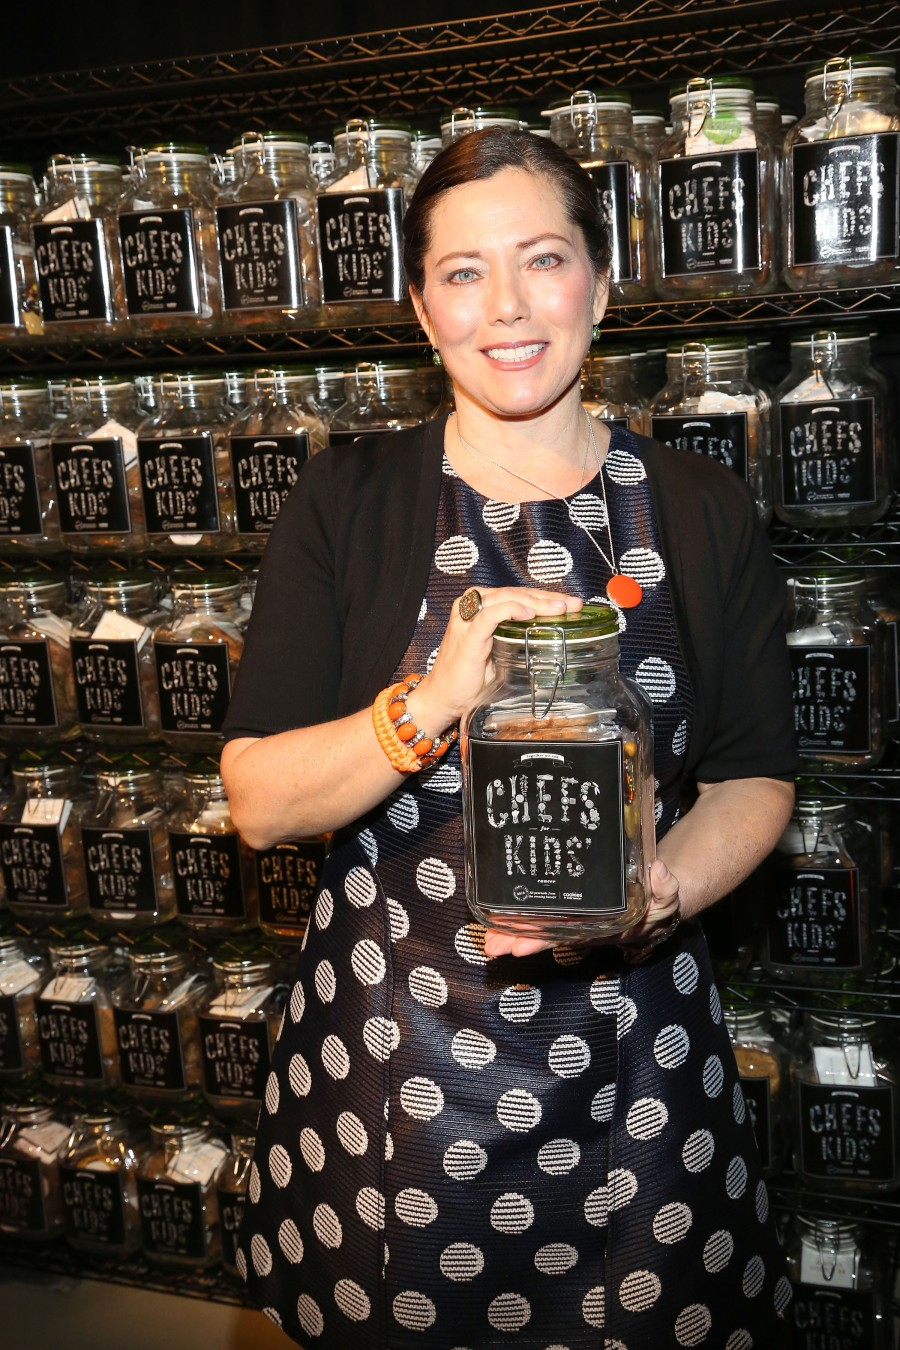 Gretchen Witt==2015 Chef For Kids Cancer to Benefit Cookies for Kids' Cancer==The Waterfront, 269 11th Avenue, NYC.==February 26, 2015==©Patrick McMullan==photo - Sylvain Gaboury/PatrickMcMullan.com====